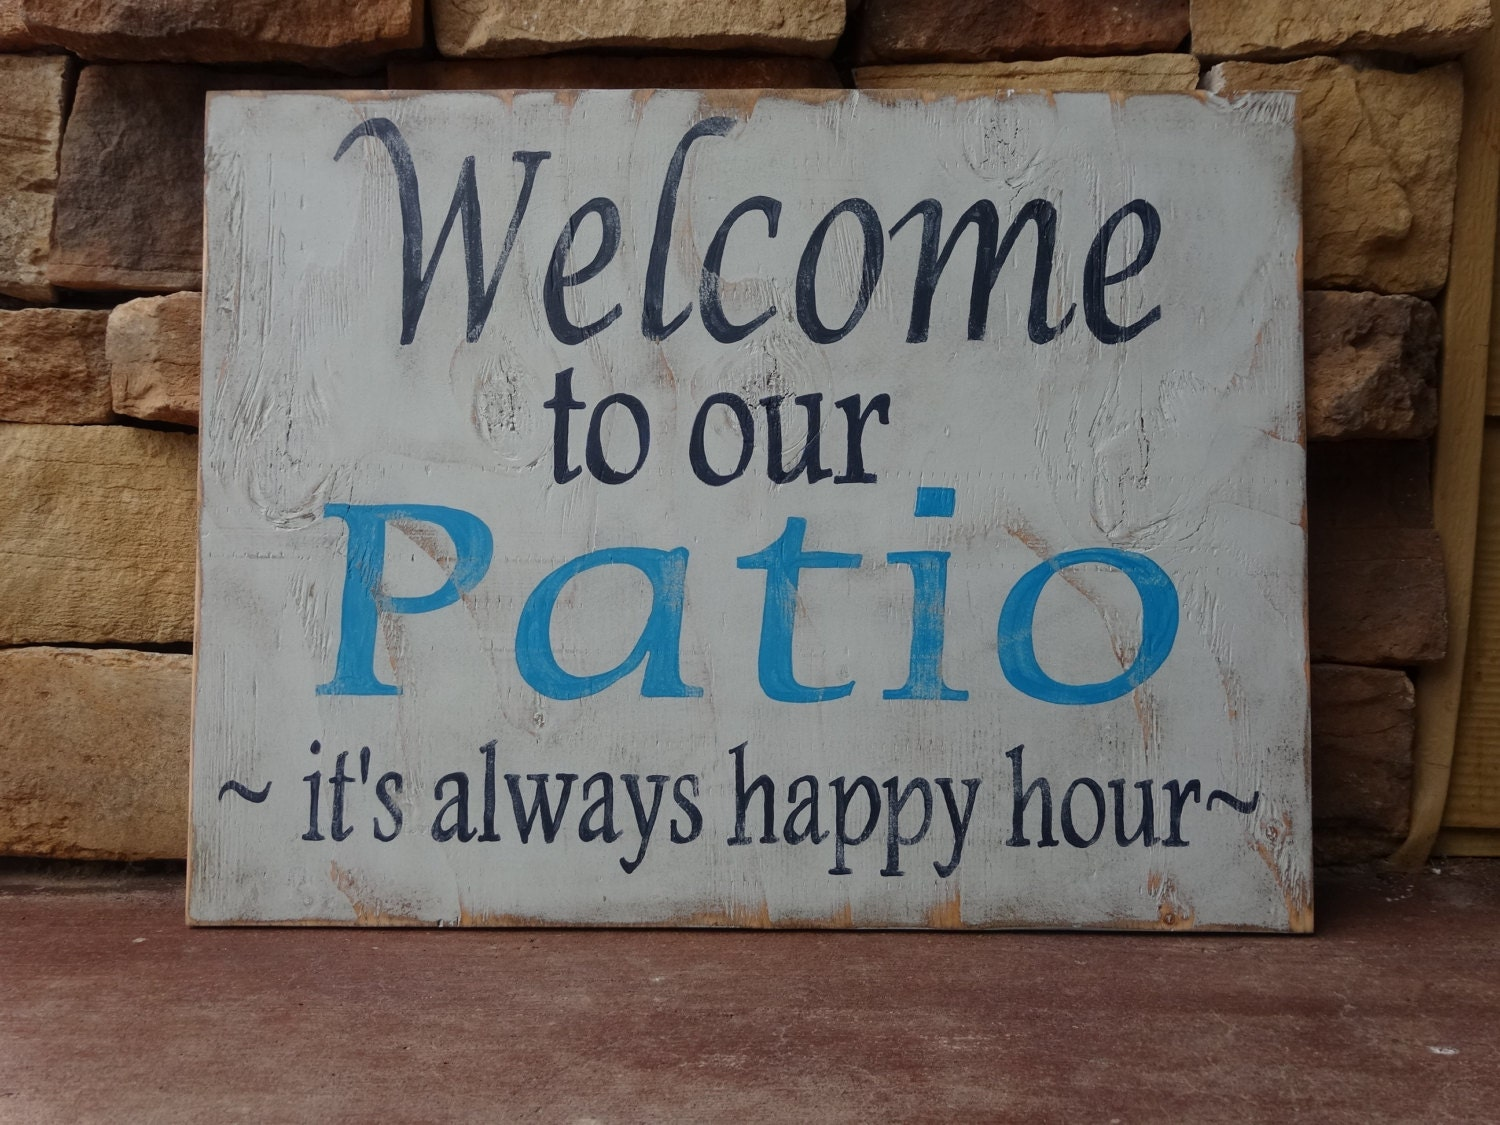 Welcome To Our Patio It's Always Happy Hour. Hand